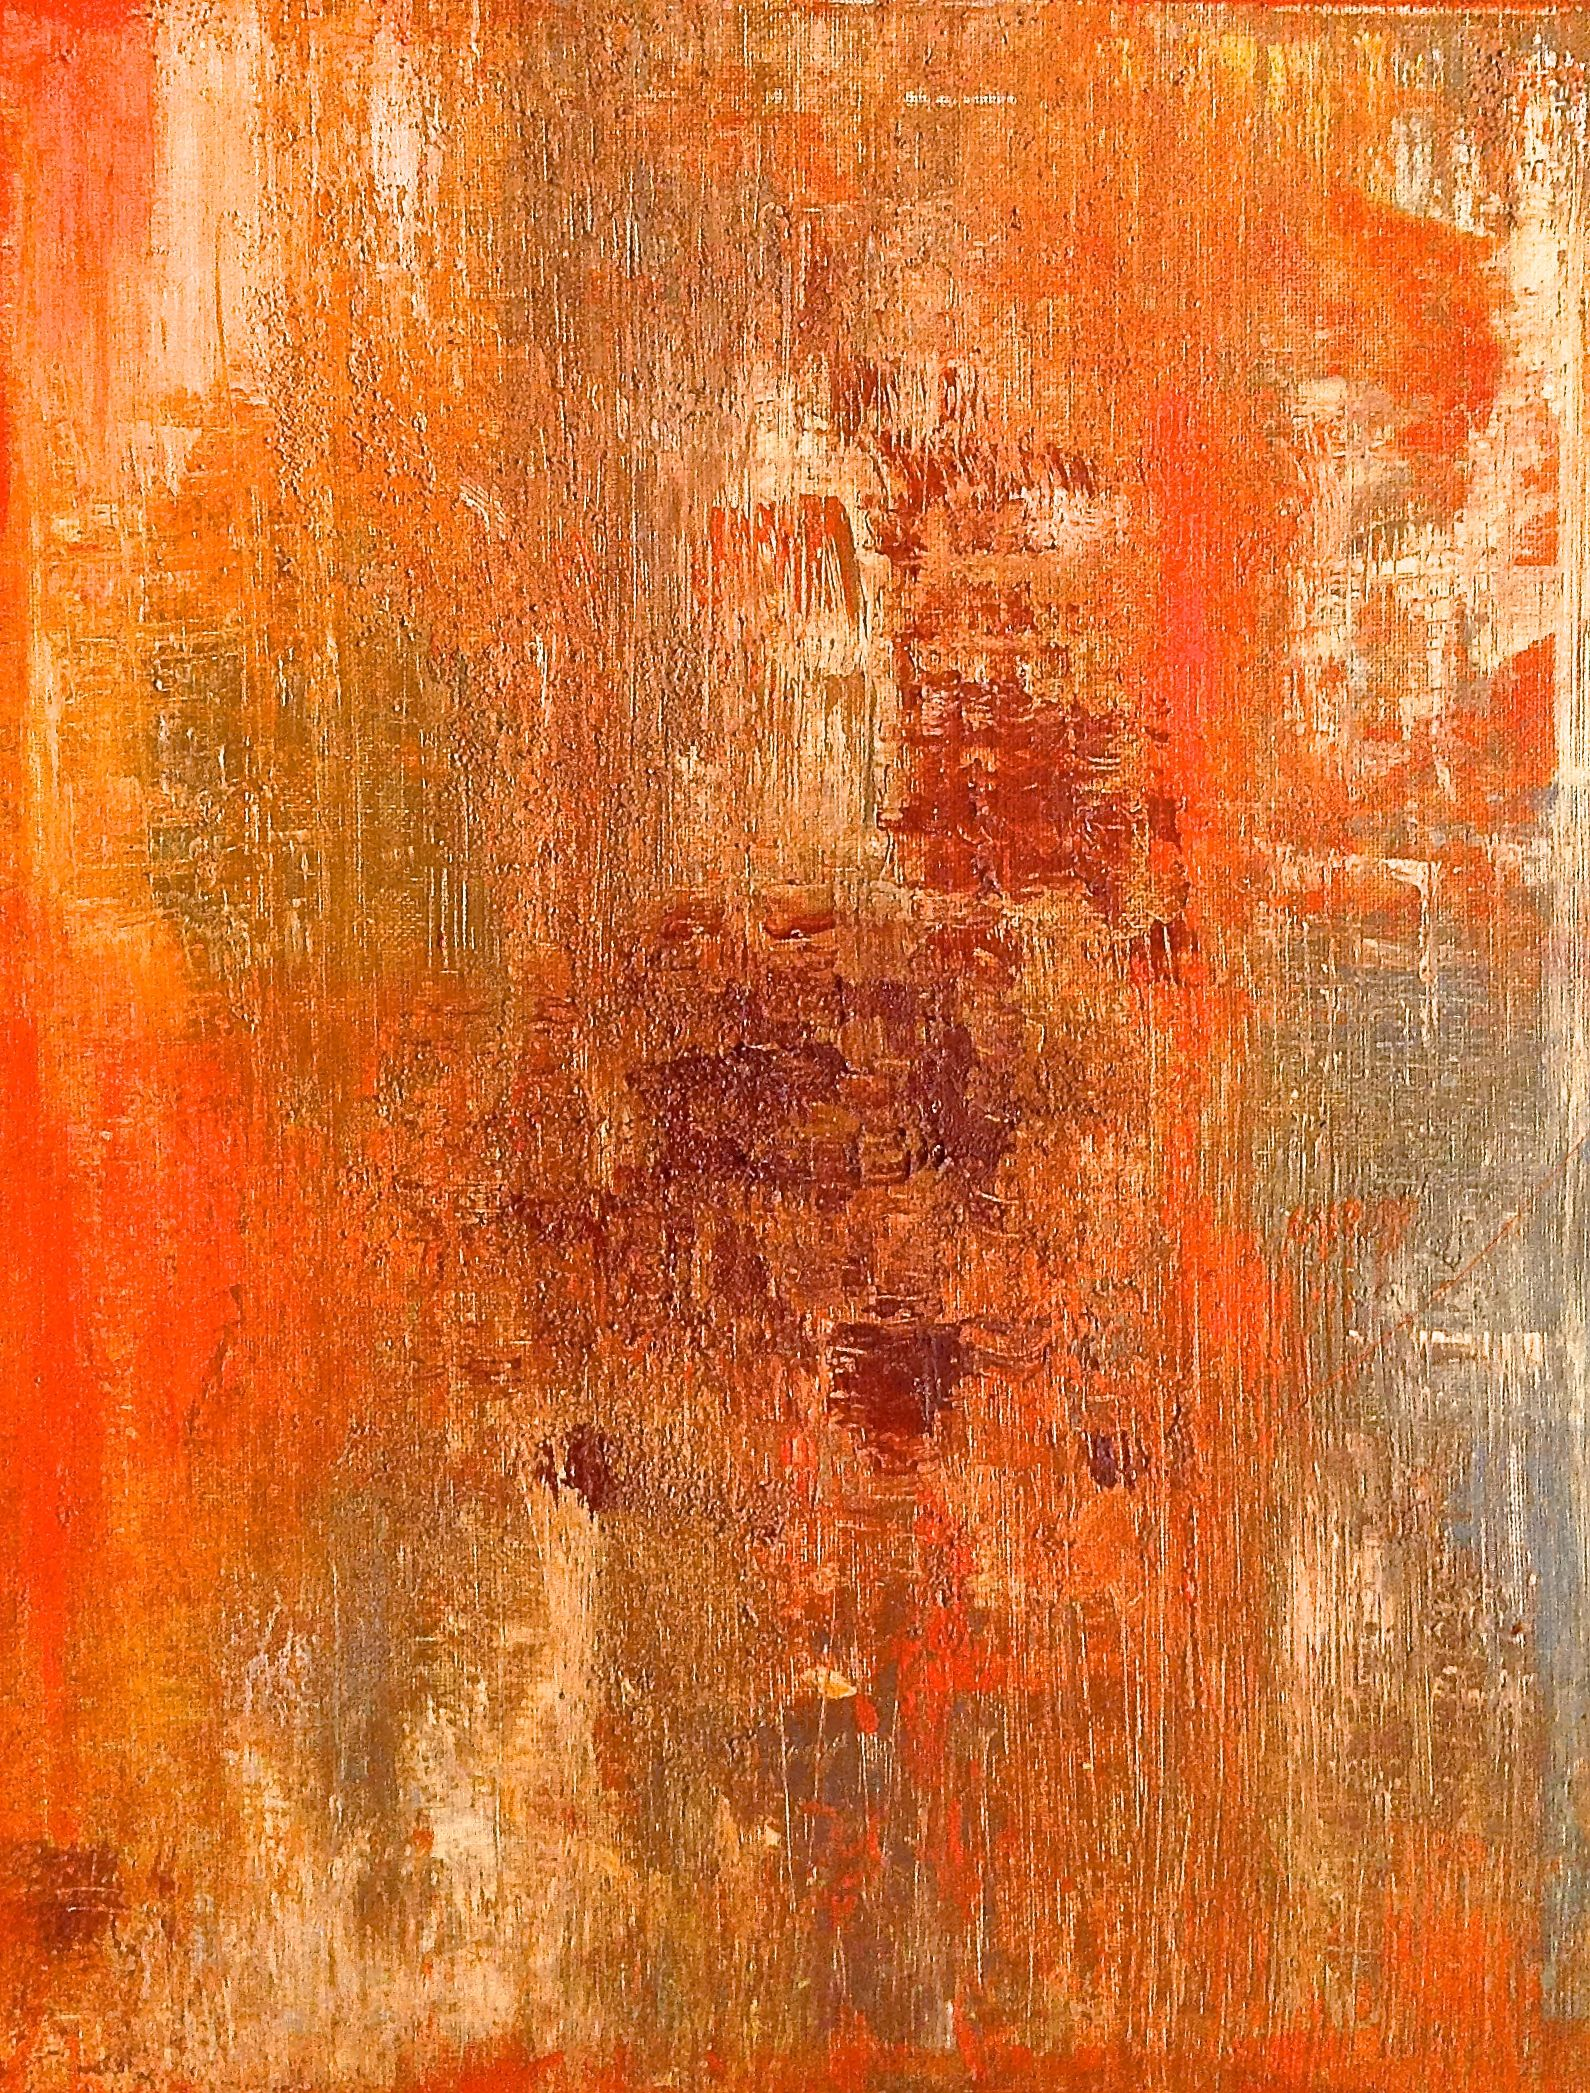 "Orange abstract painting with browns, grays, creams, texture, original painting Title: Palm Springs Heat, 16"" x 20"" https://www.etsy.com/listing/205998547/orange-abstract-painting-with-browns?ref=shop_home_active_9"